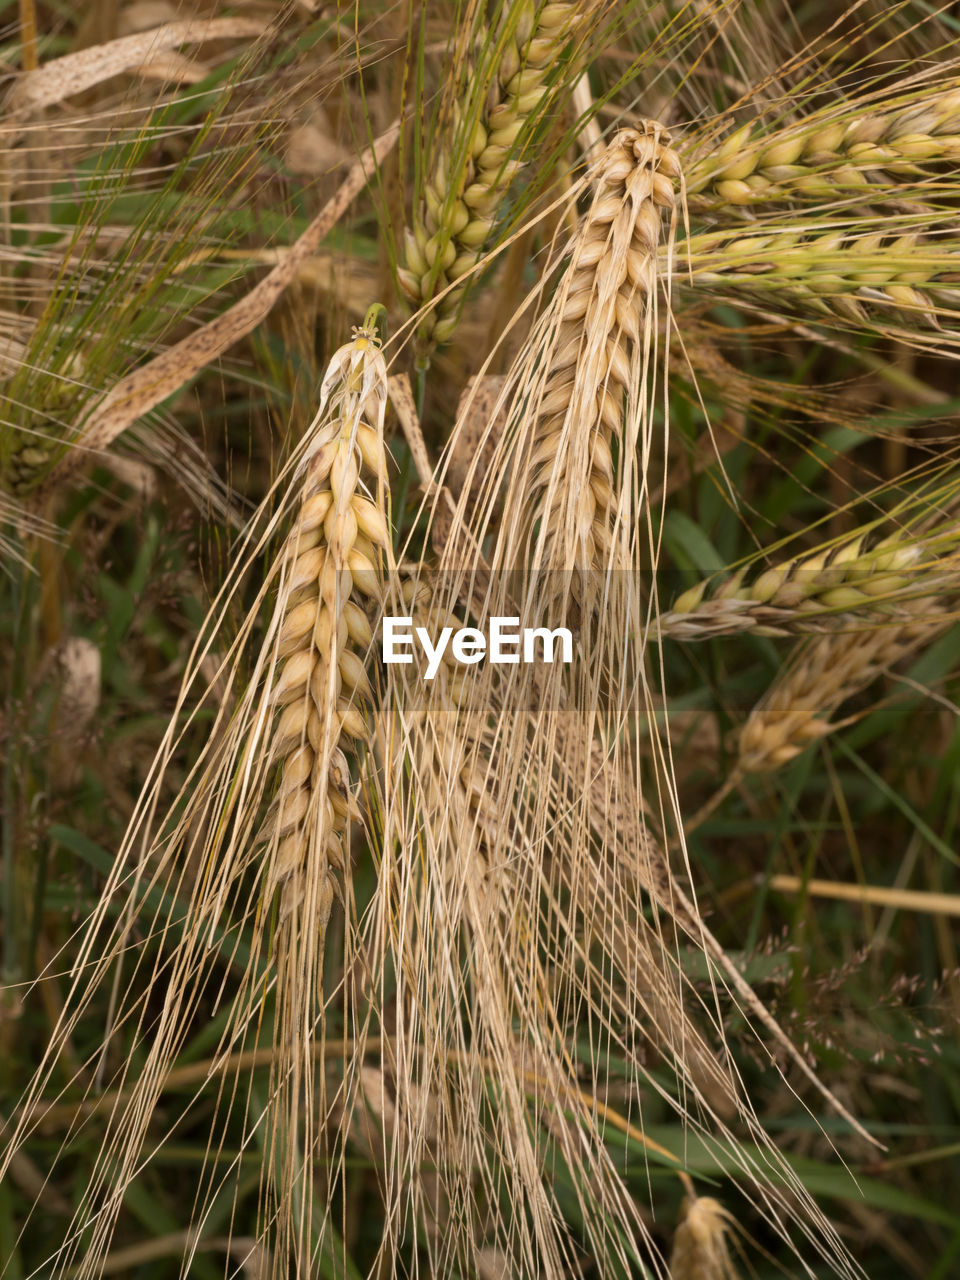 cereal plant, growth, wheat, nature, plant, day, agriculture, crop, outdoors, no people, ear of wheat, field, focus on foreground, rye - grain, close-up, rural scene, beauty in nature